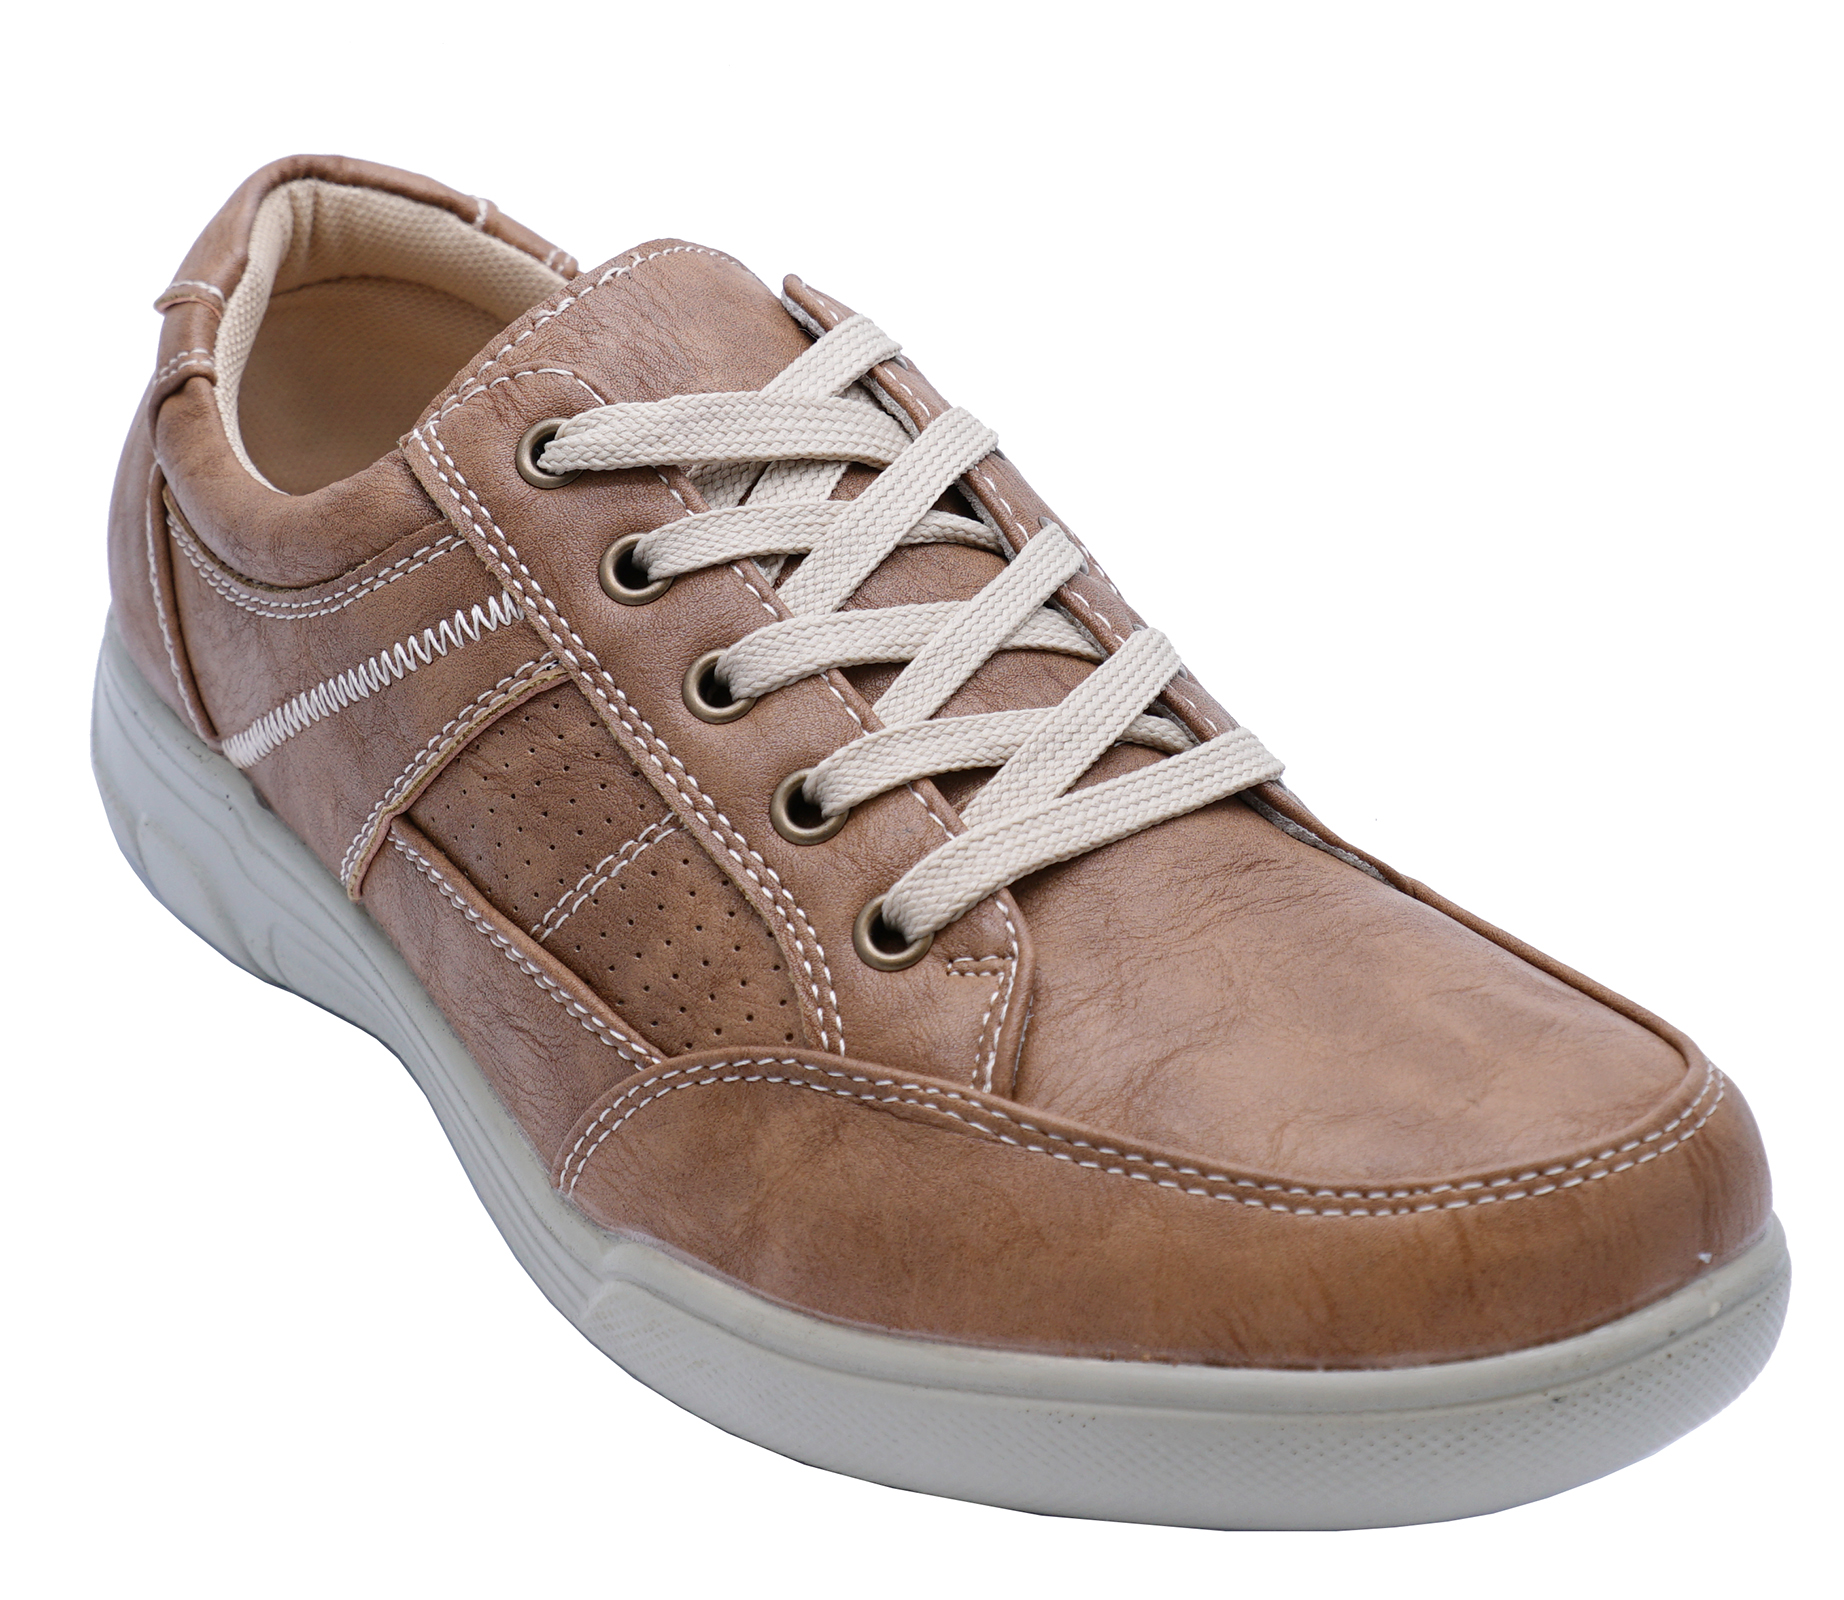 thumbnail 5 - MENS-TAN-LACE-UP-COMFY-LIGHTWEIGHT-SMART-CASUAL-WALKING-TRAINER-SHOES-UK-6-12